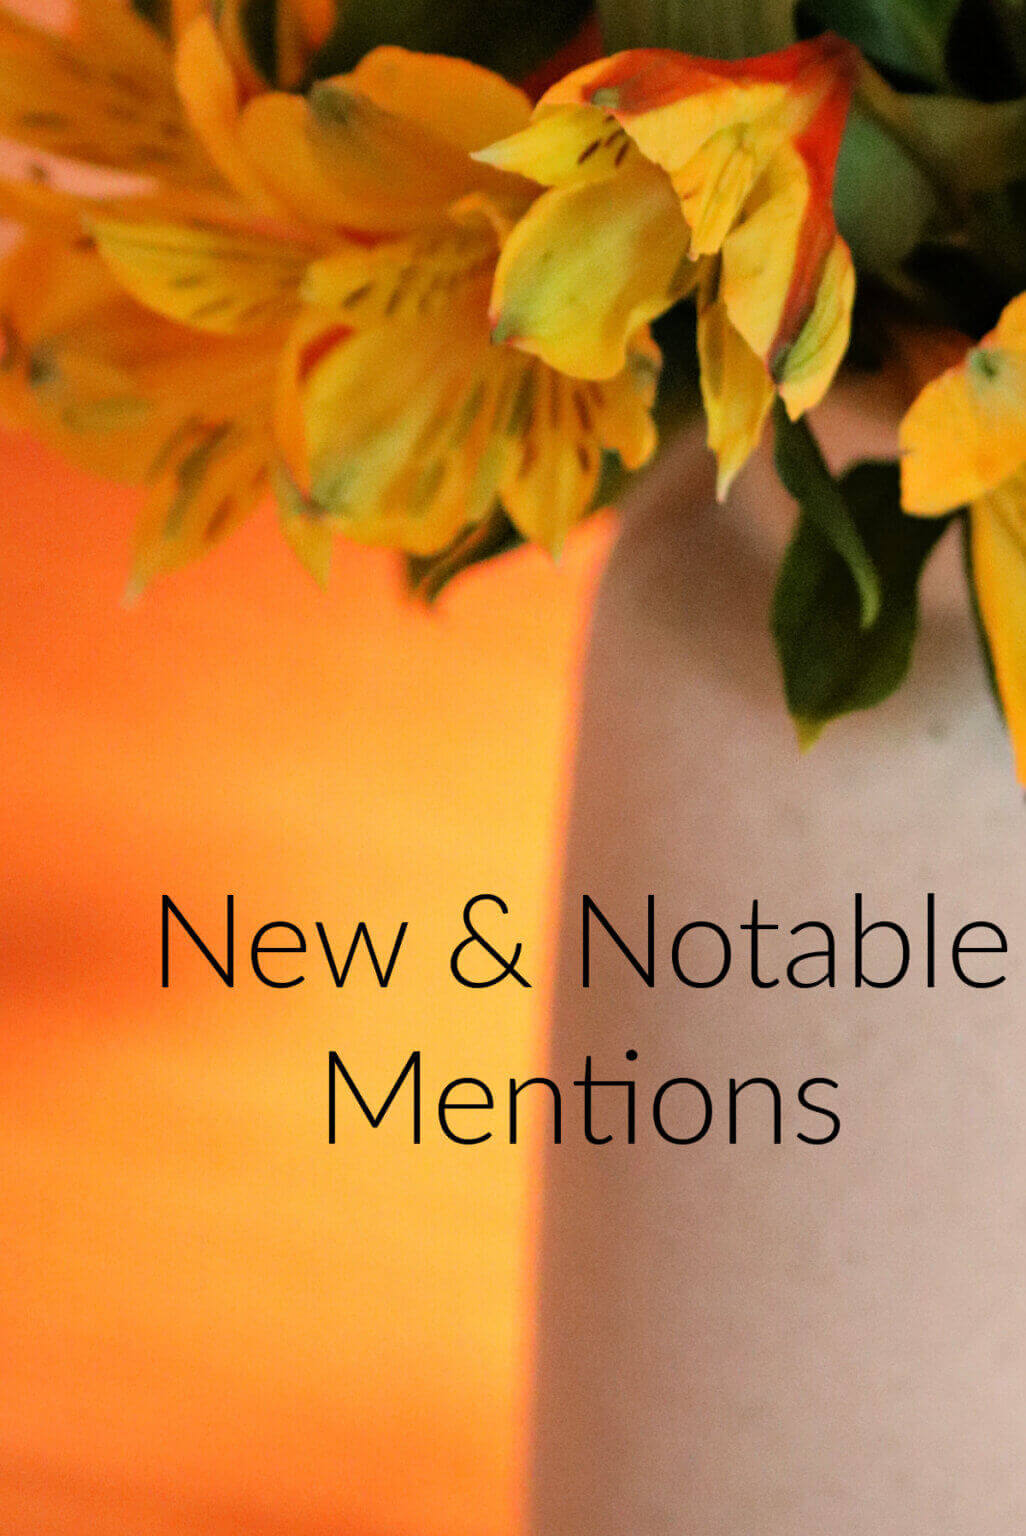 New & Notable Mentions #11